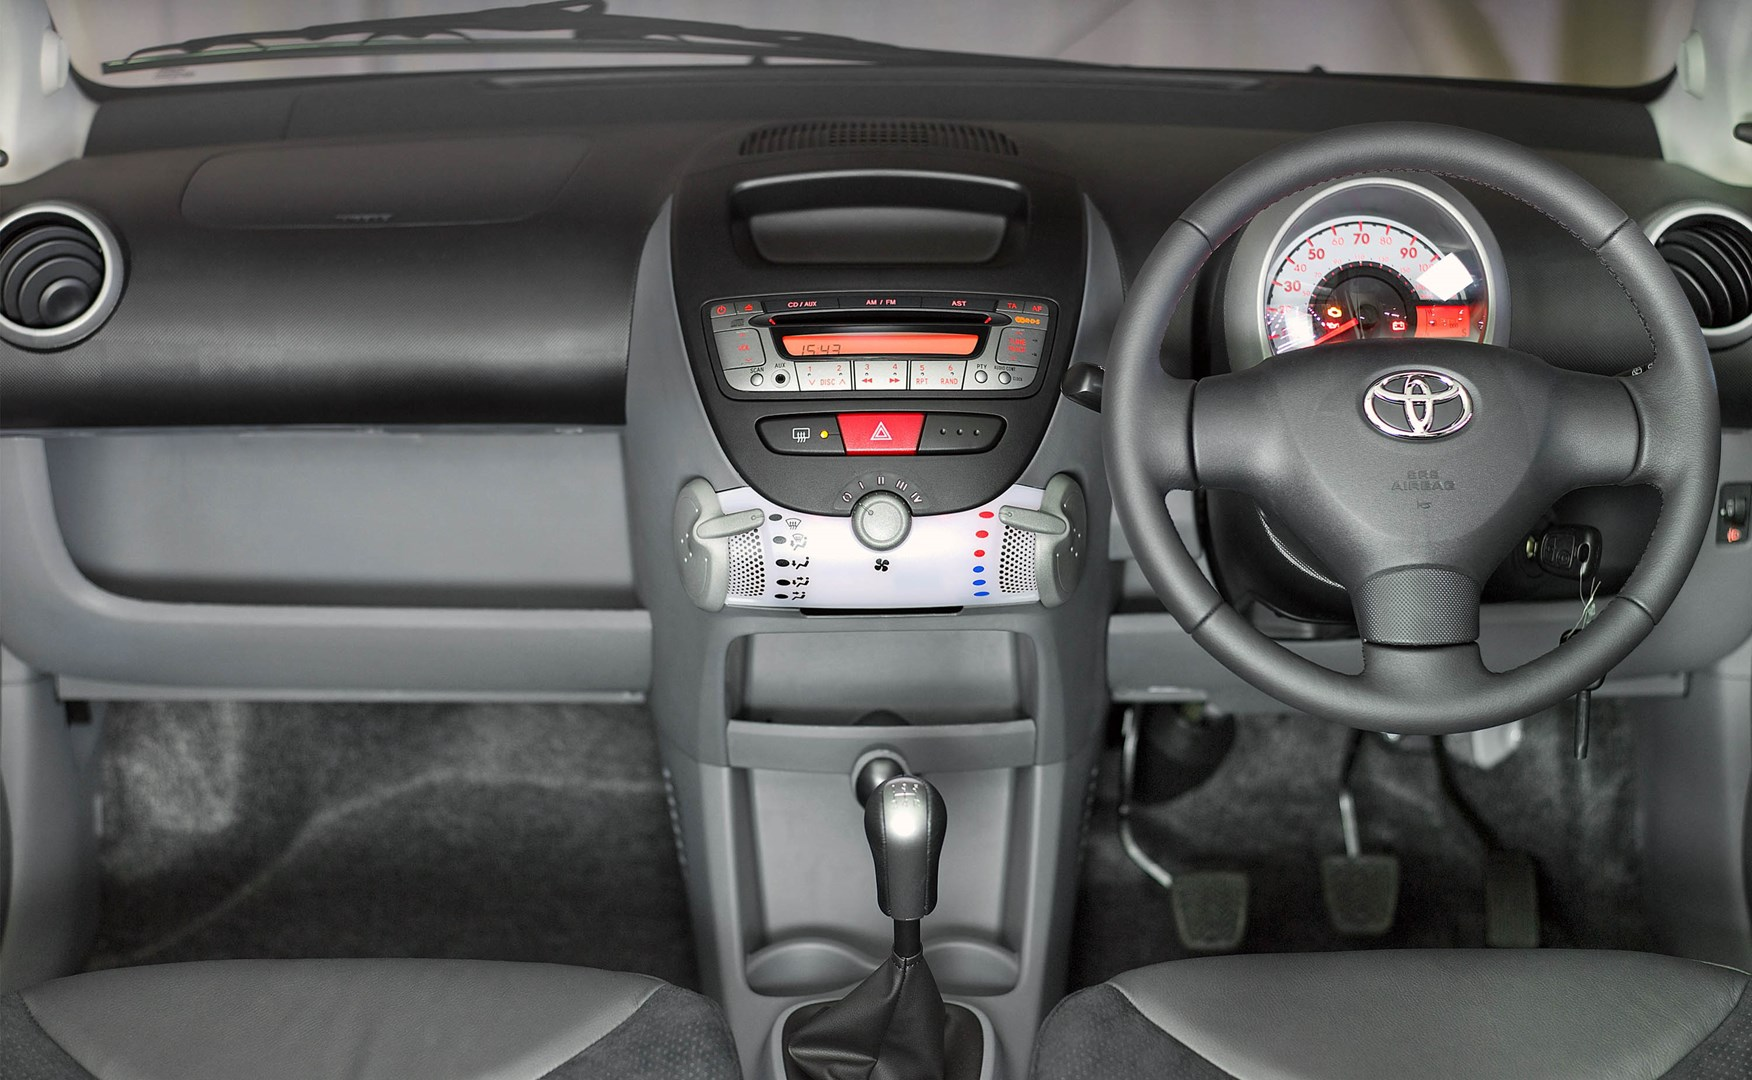 Toyota aygo hatchback review 2005 2014 parkers - Toyota aygo interior ...